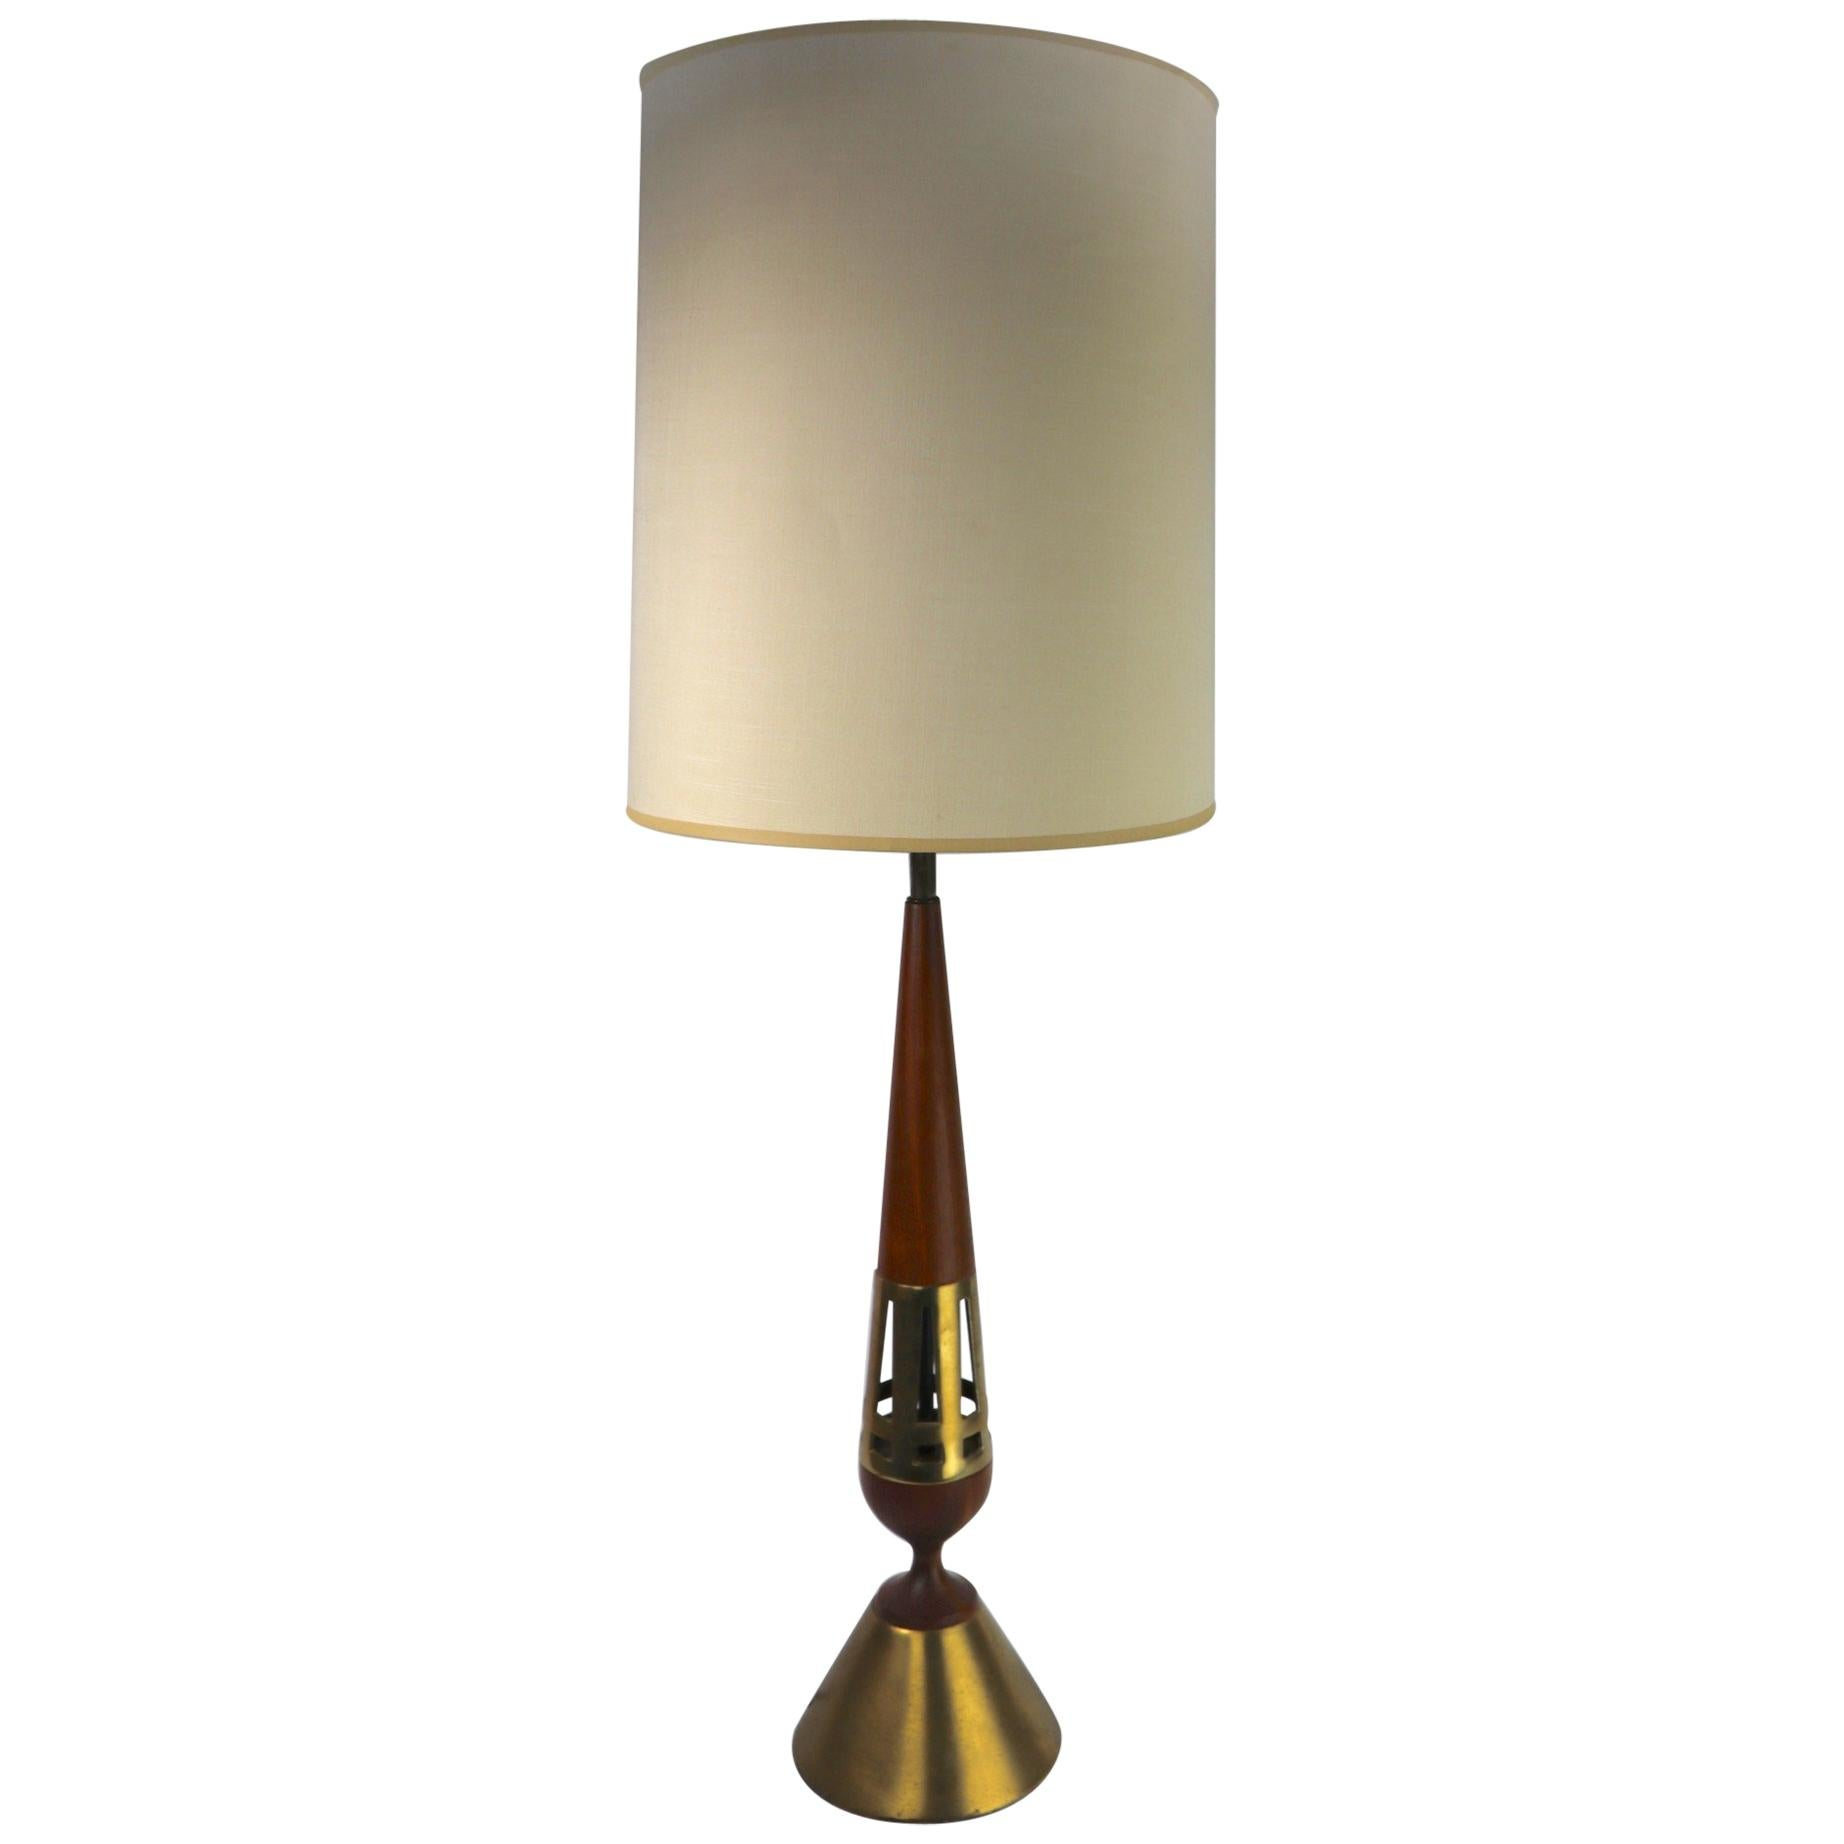 Tony Paul for Westwood Lamp Mid Century  Table Lamp